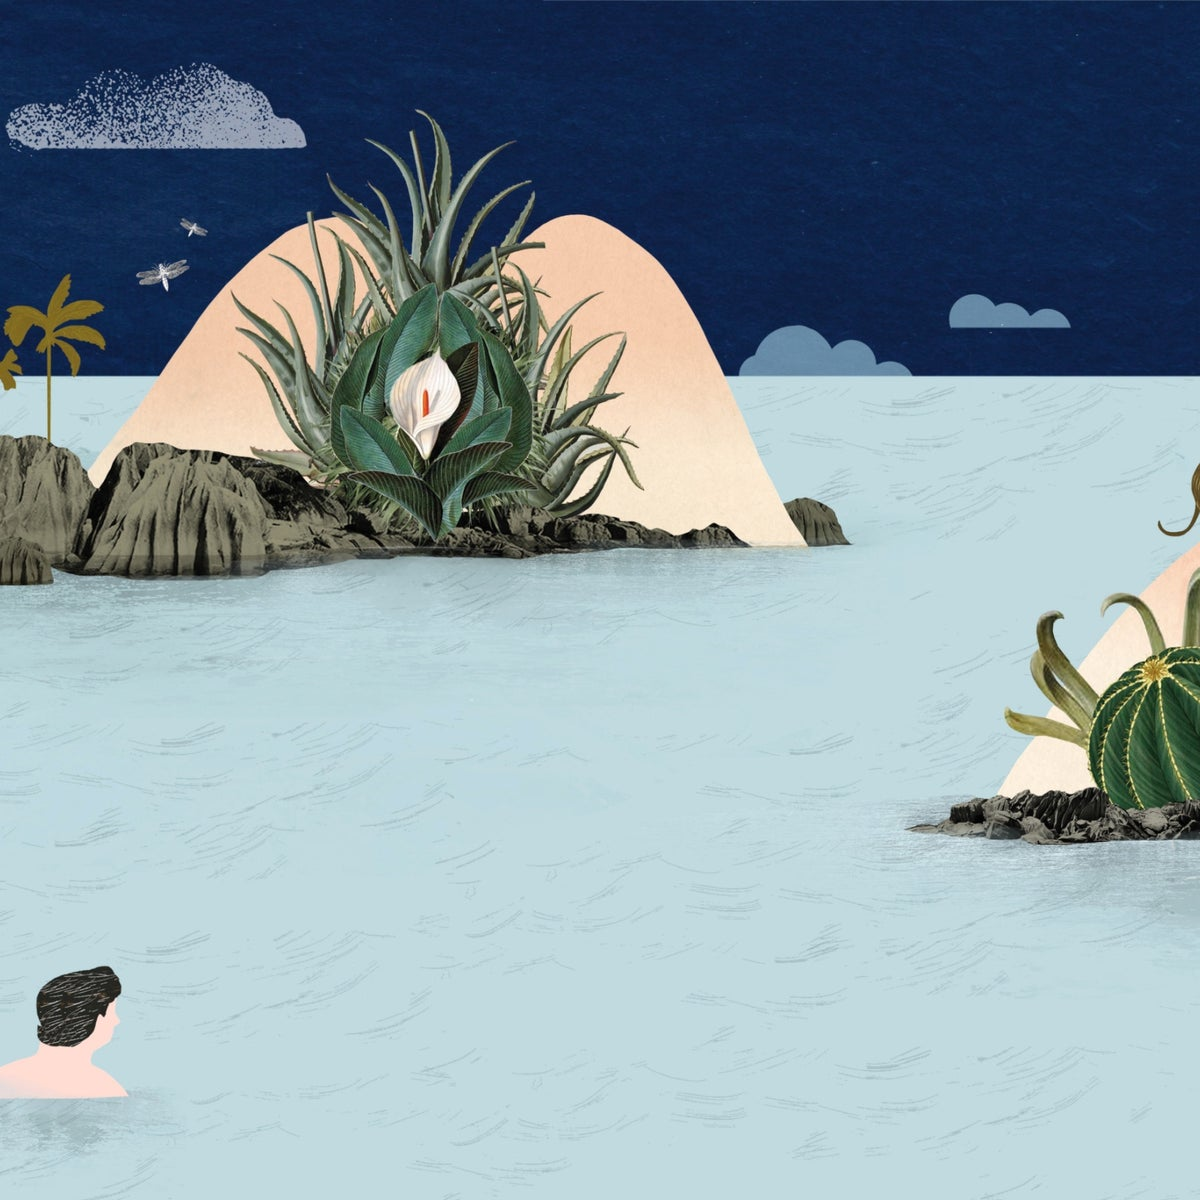 Illustration: A person swims toward islands evoking male and female genitalia.